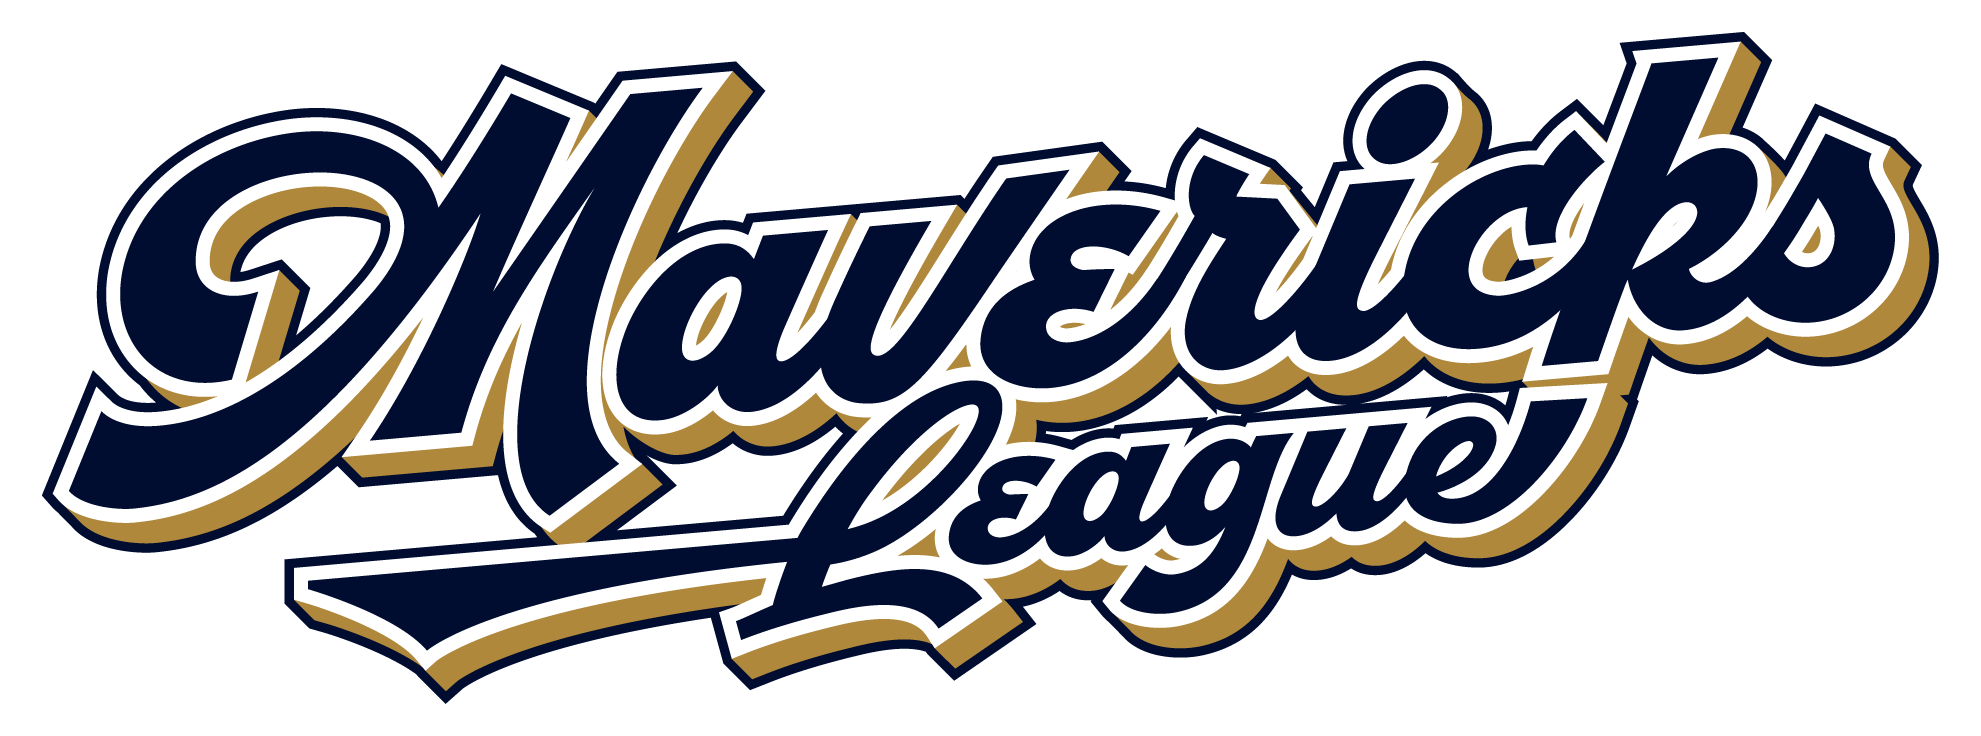 Mavericks Independent Baseball League